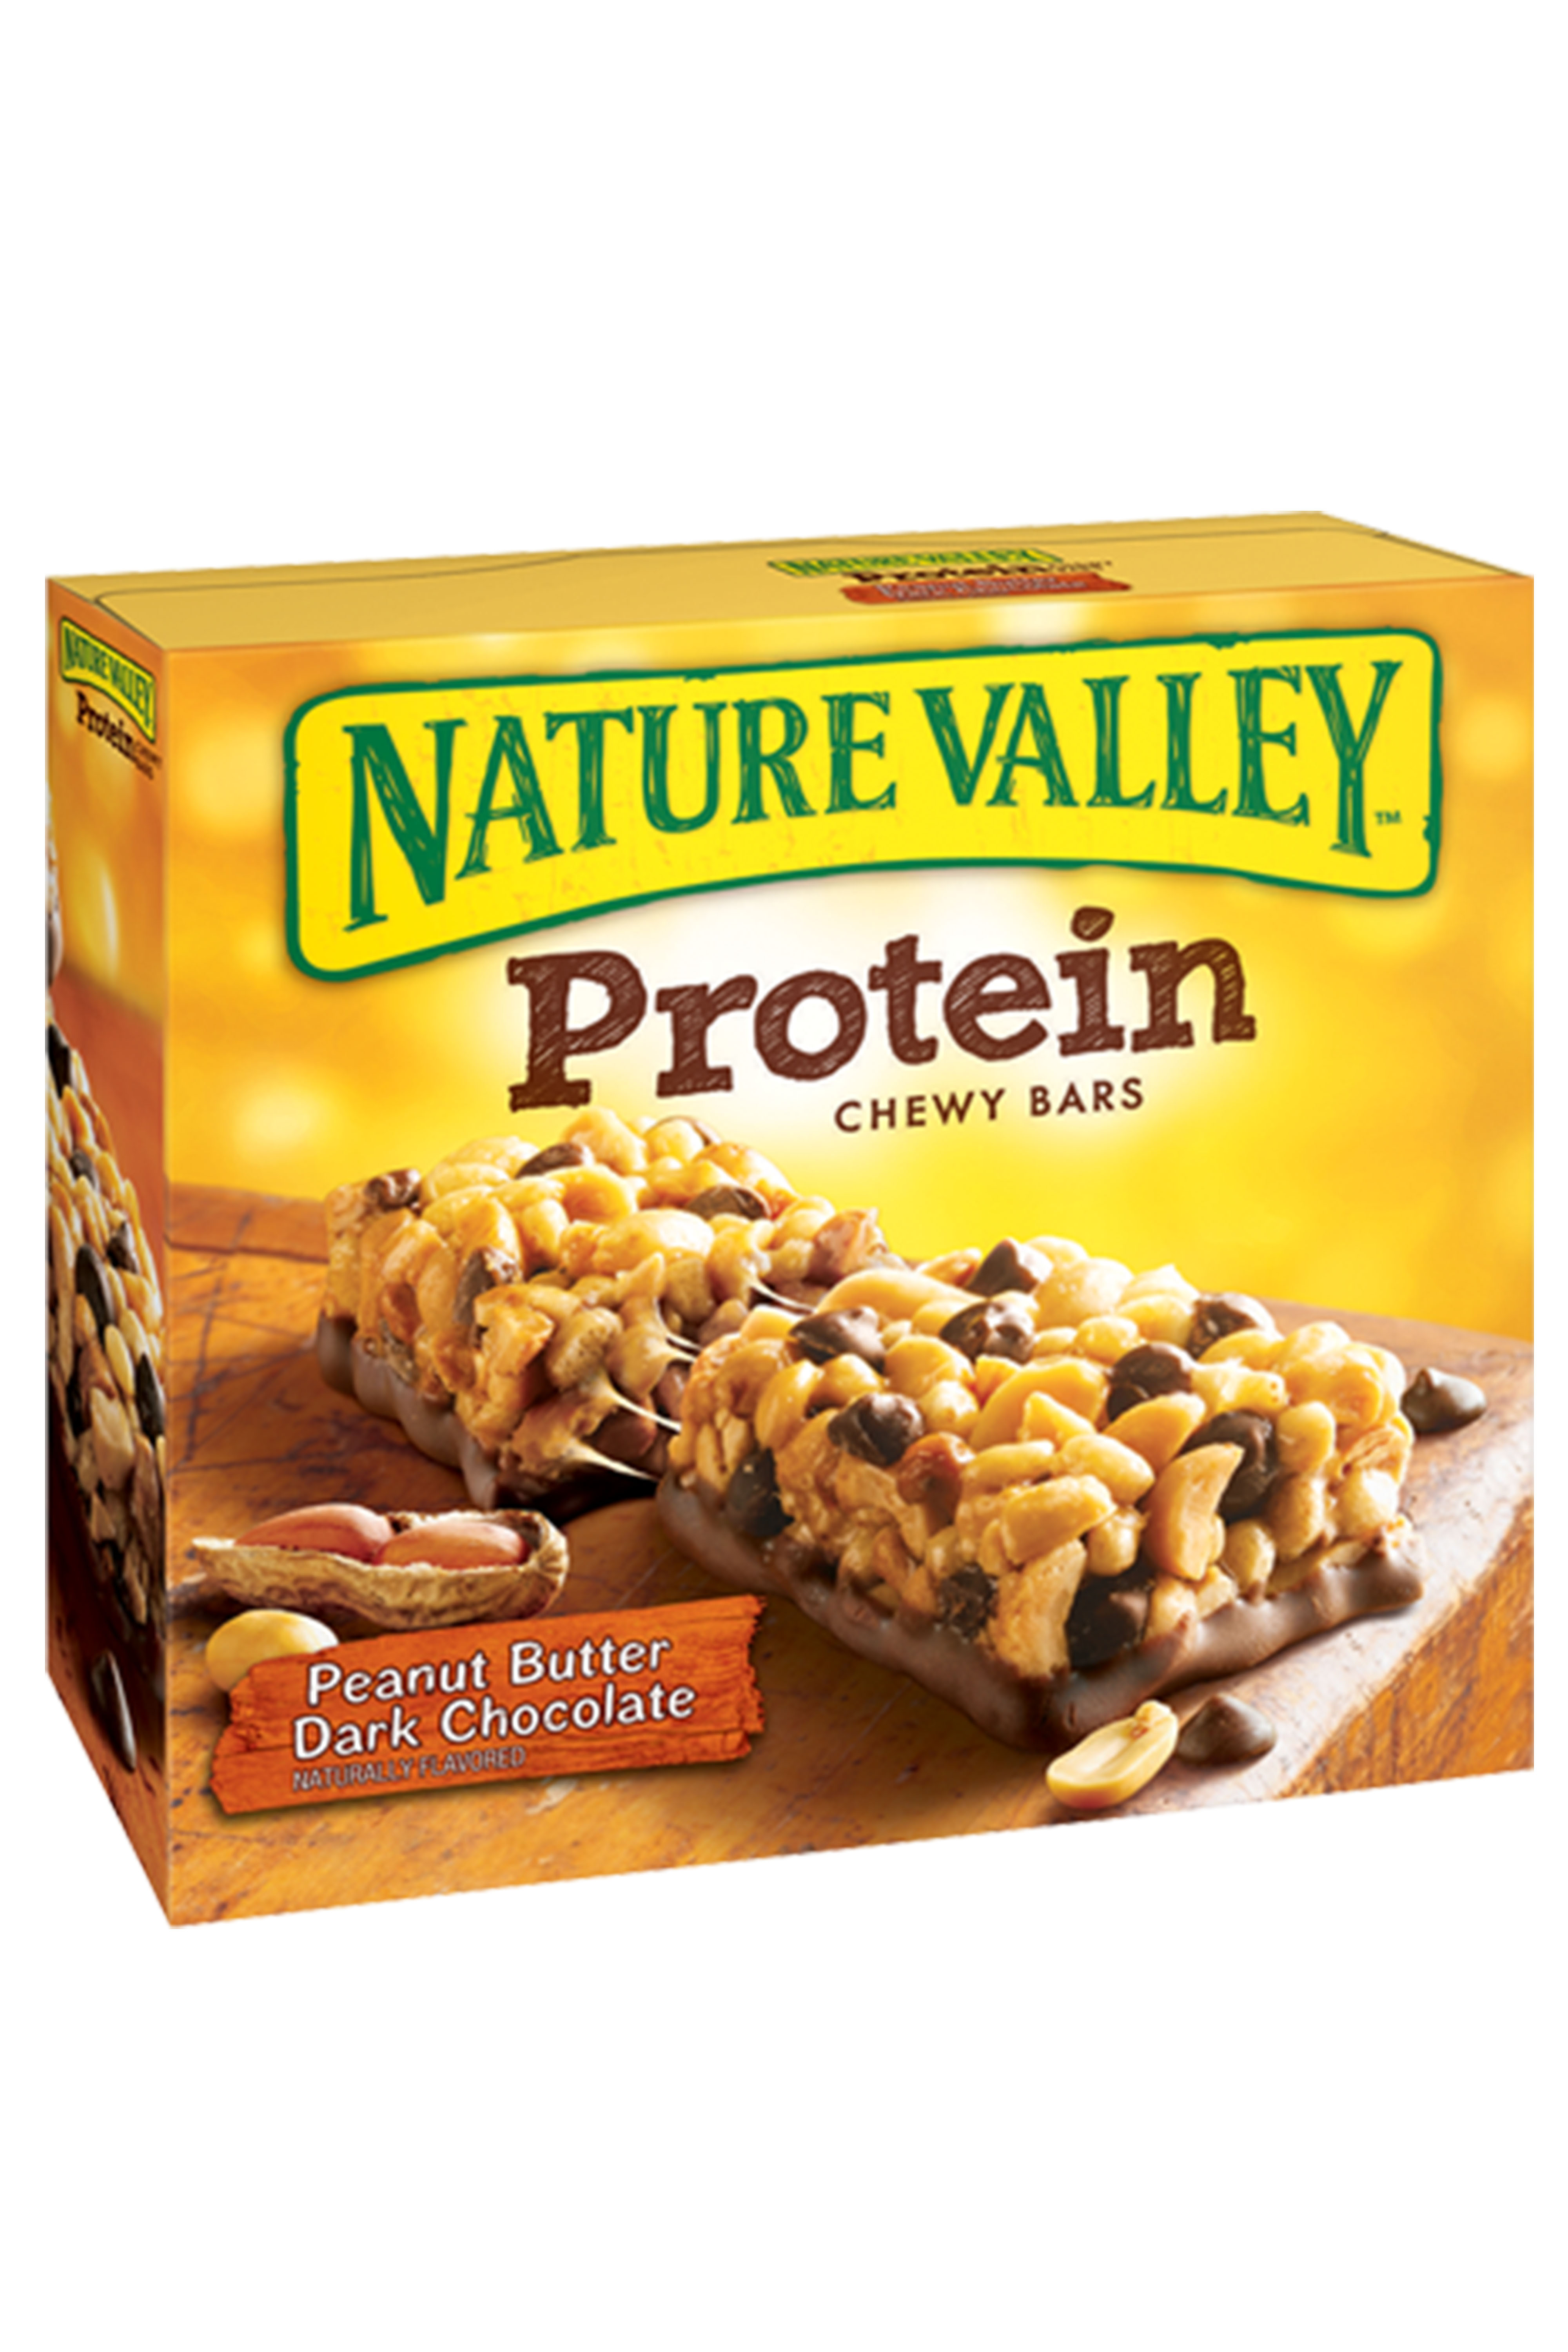 Nature Valley Bars Good For You